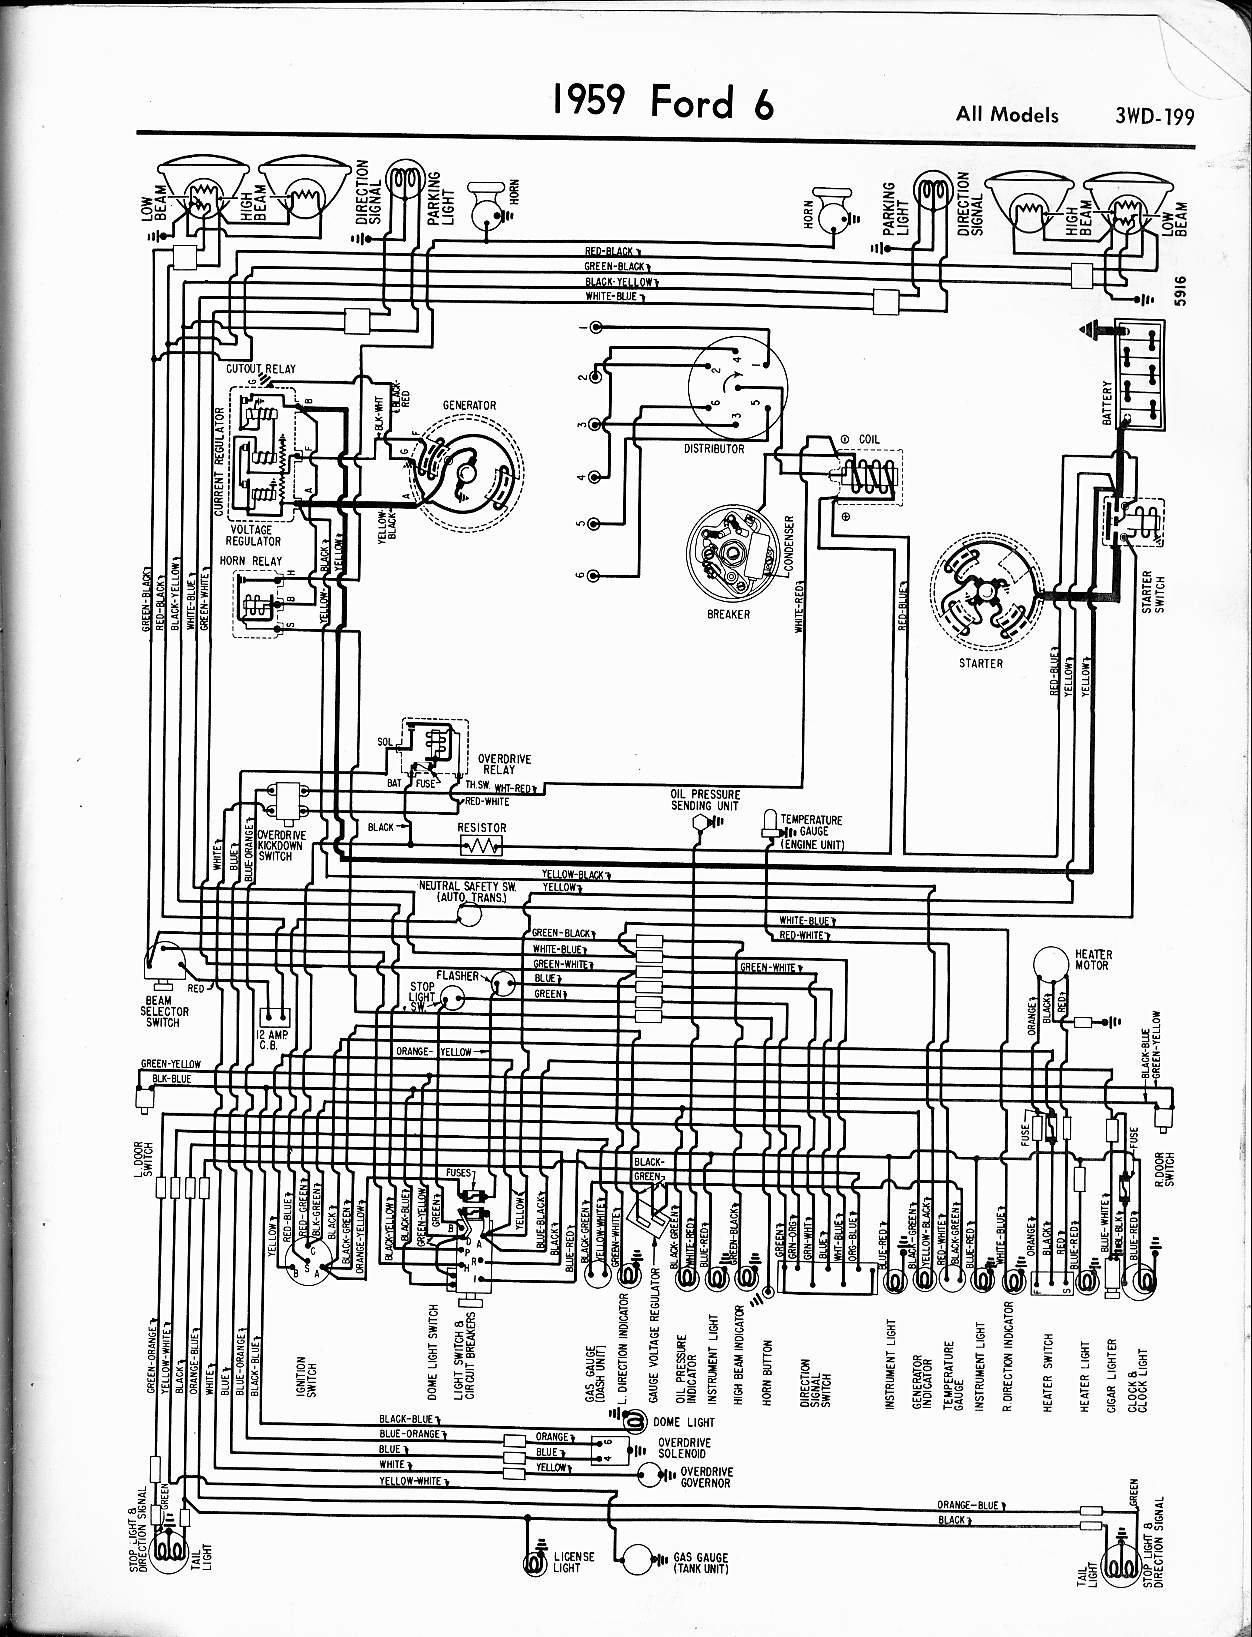 I need a headlight switch    wiring       diagram    for a 59 f100